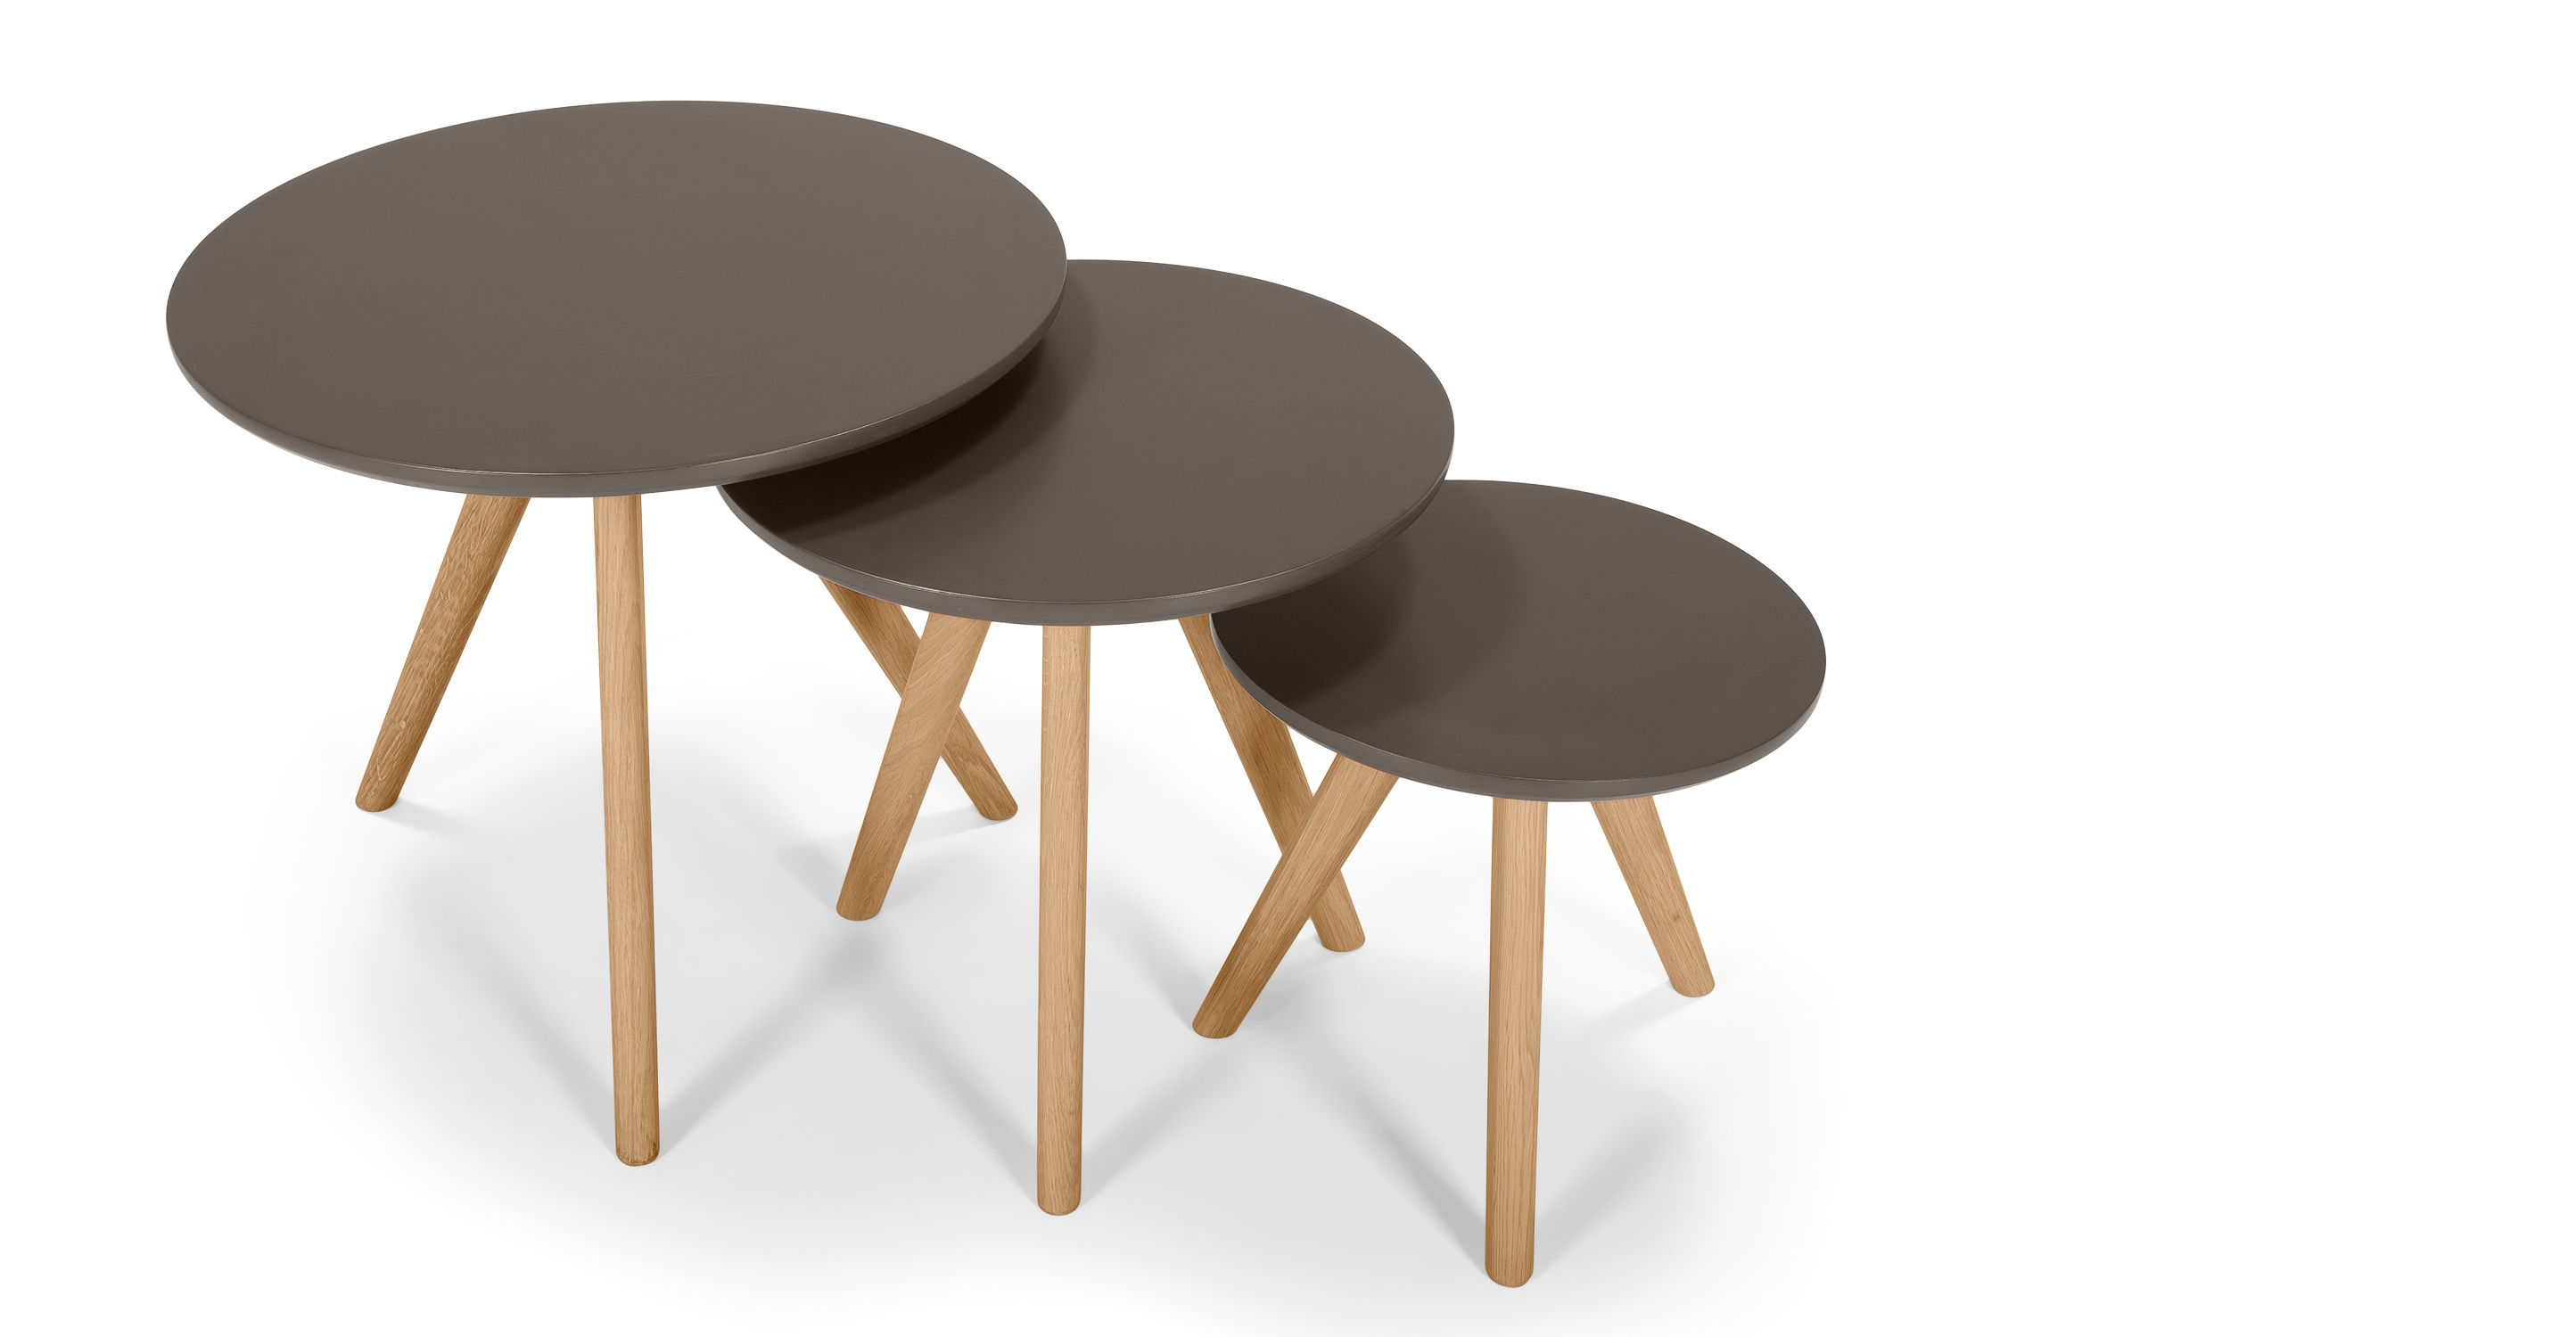 Trio of Orion Side Tables in oak and grey